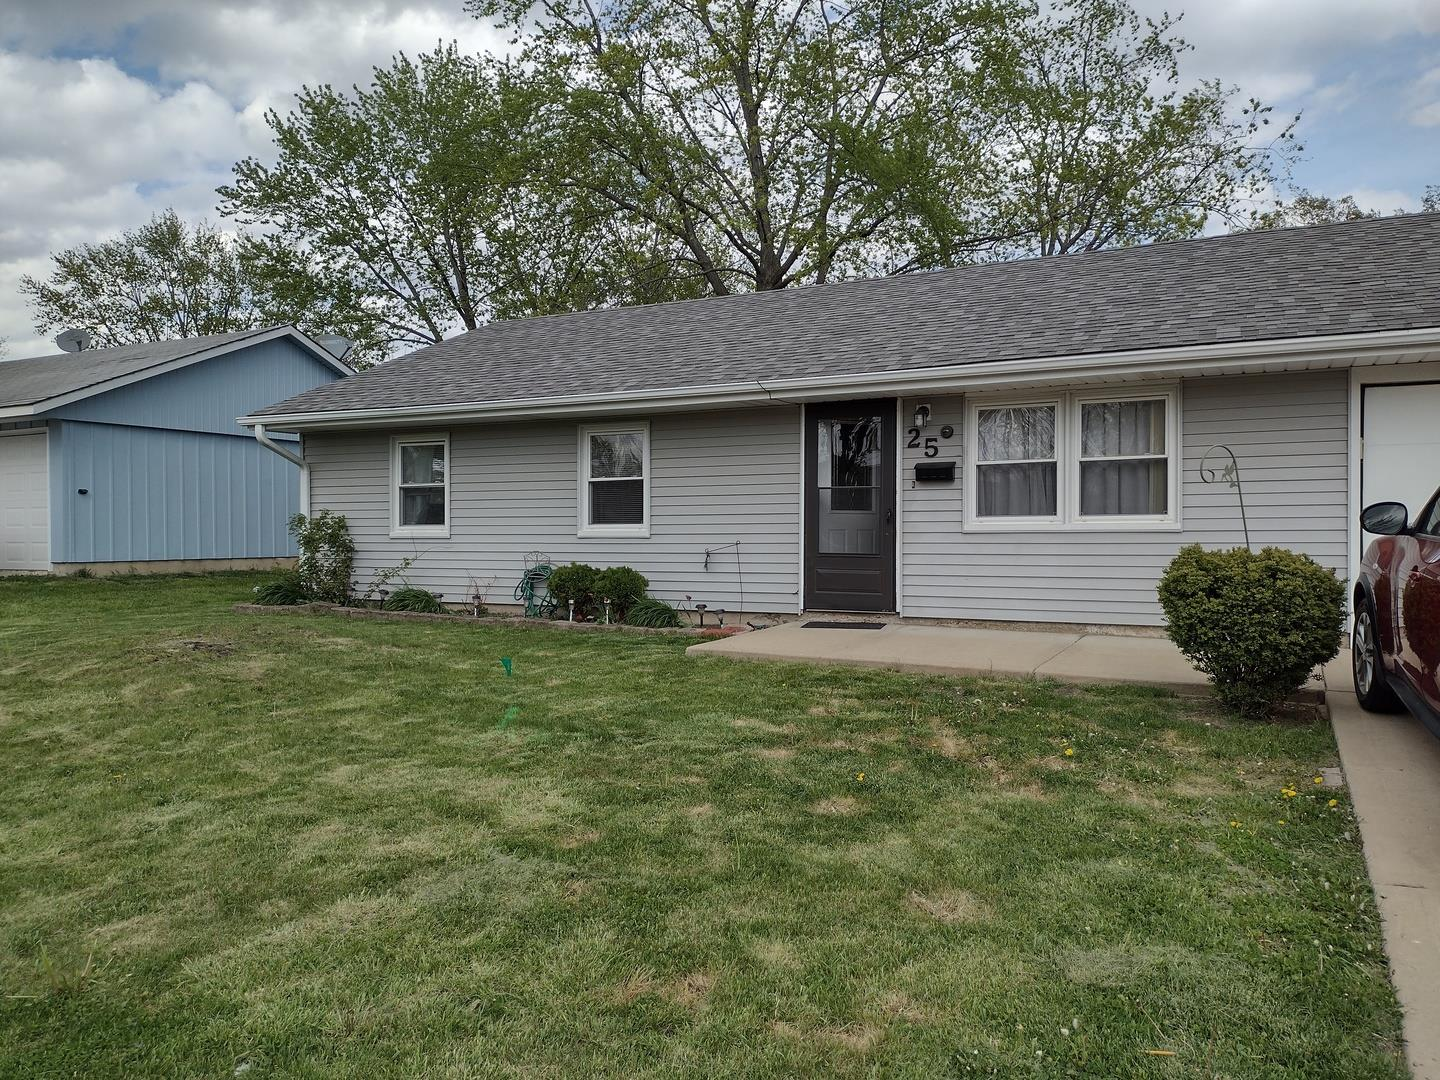 25 S Oltendorf Road, Streamwood, IL 60107 - #: 11074903